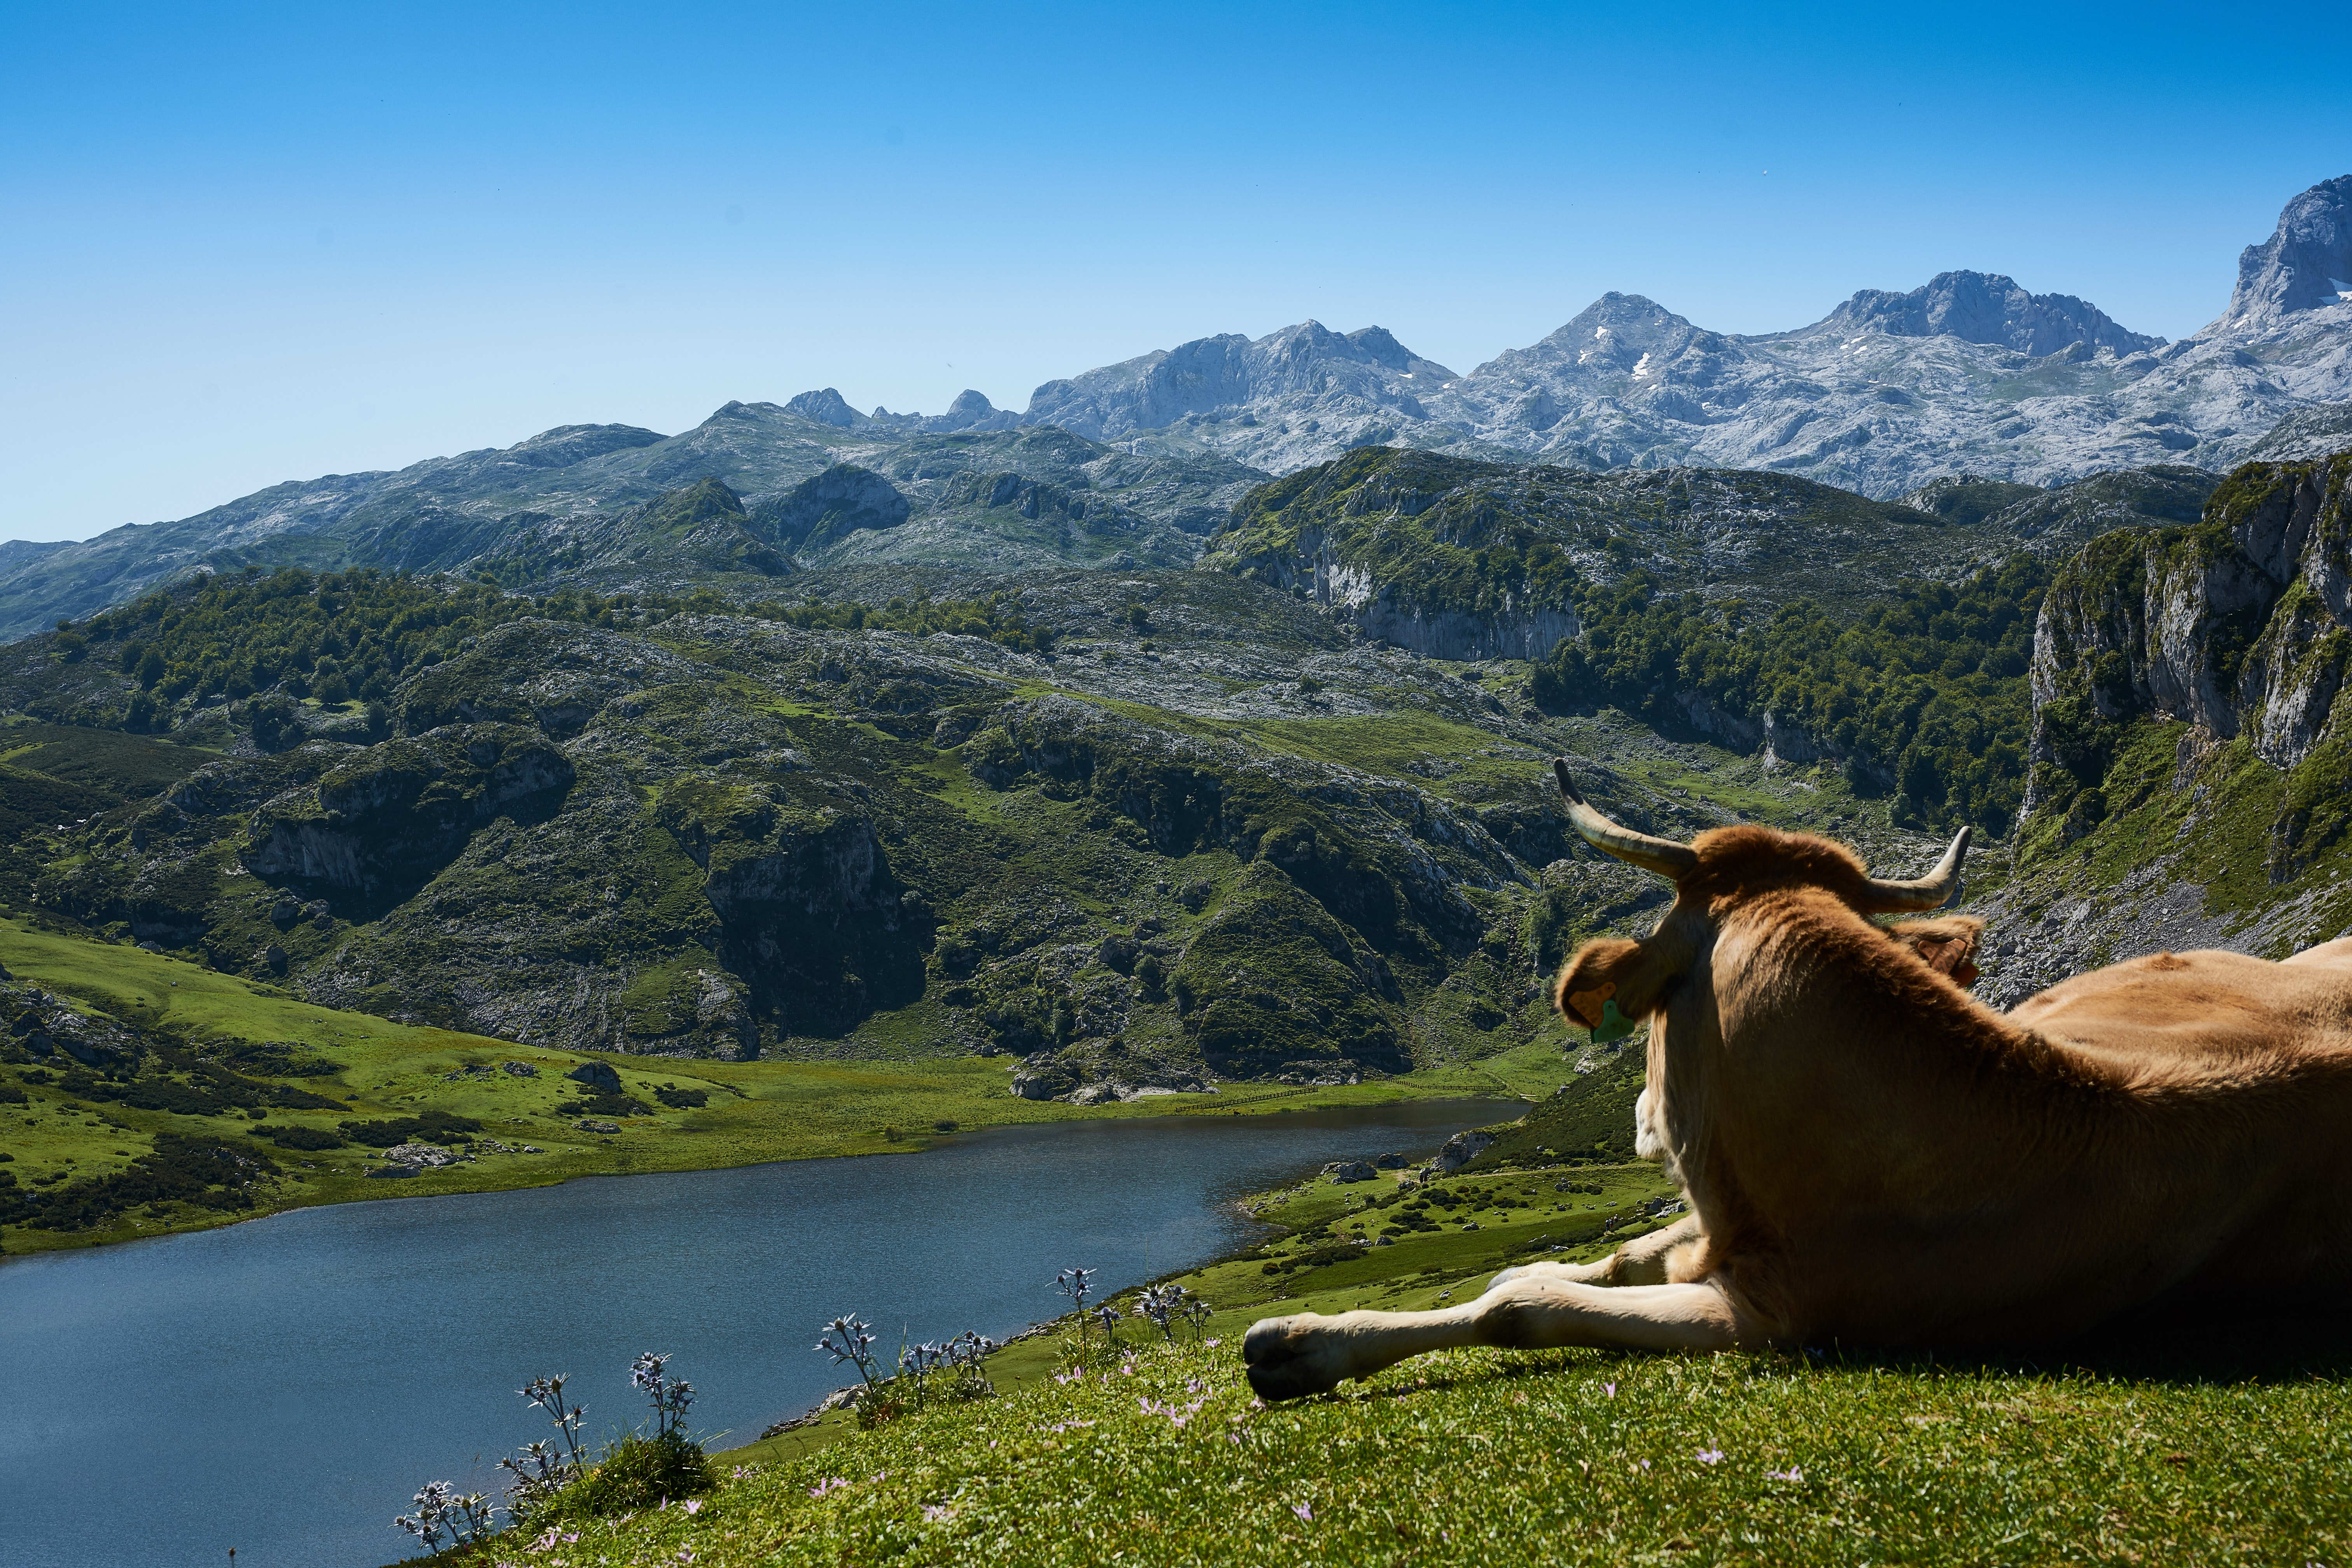 Brown cattle lying on grass field watching body of water surrounded by mountains photo